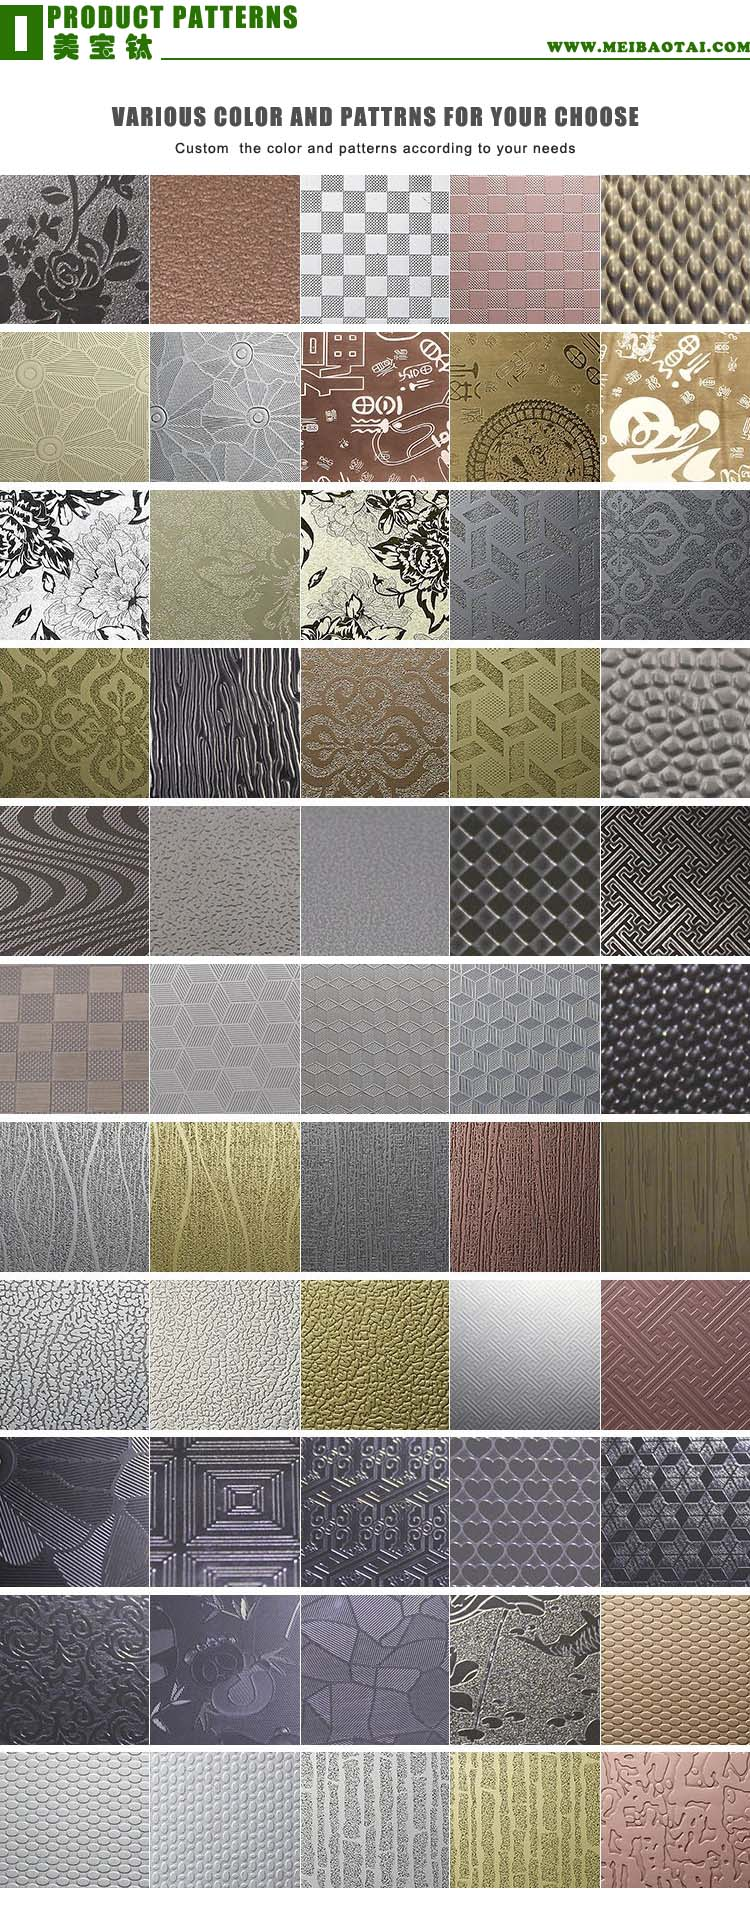 embossed_products_patterns